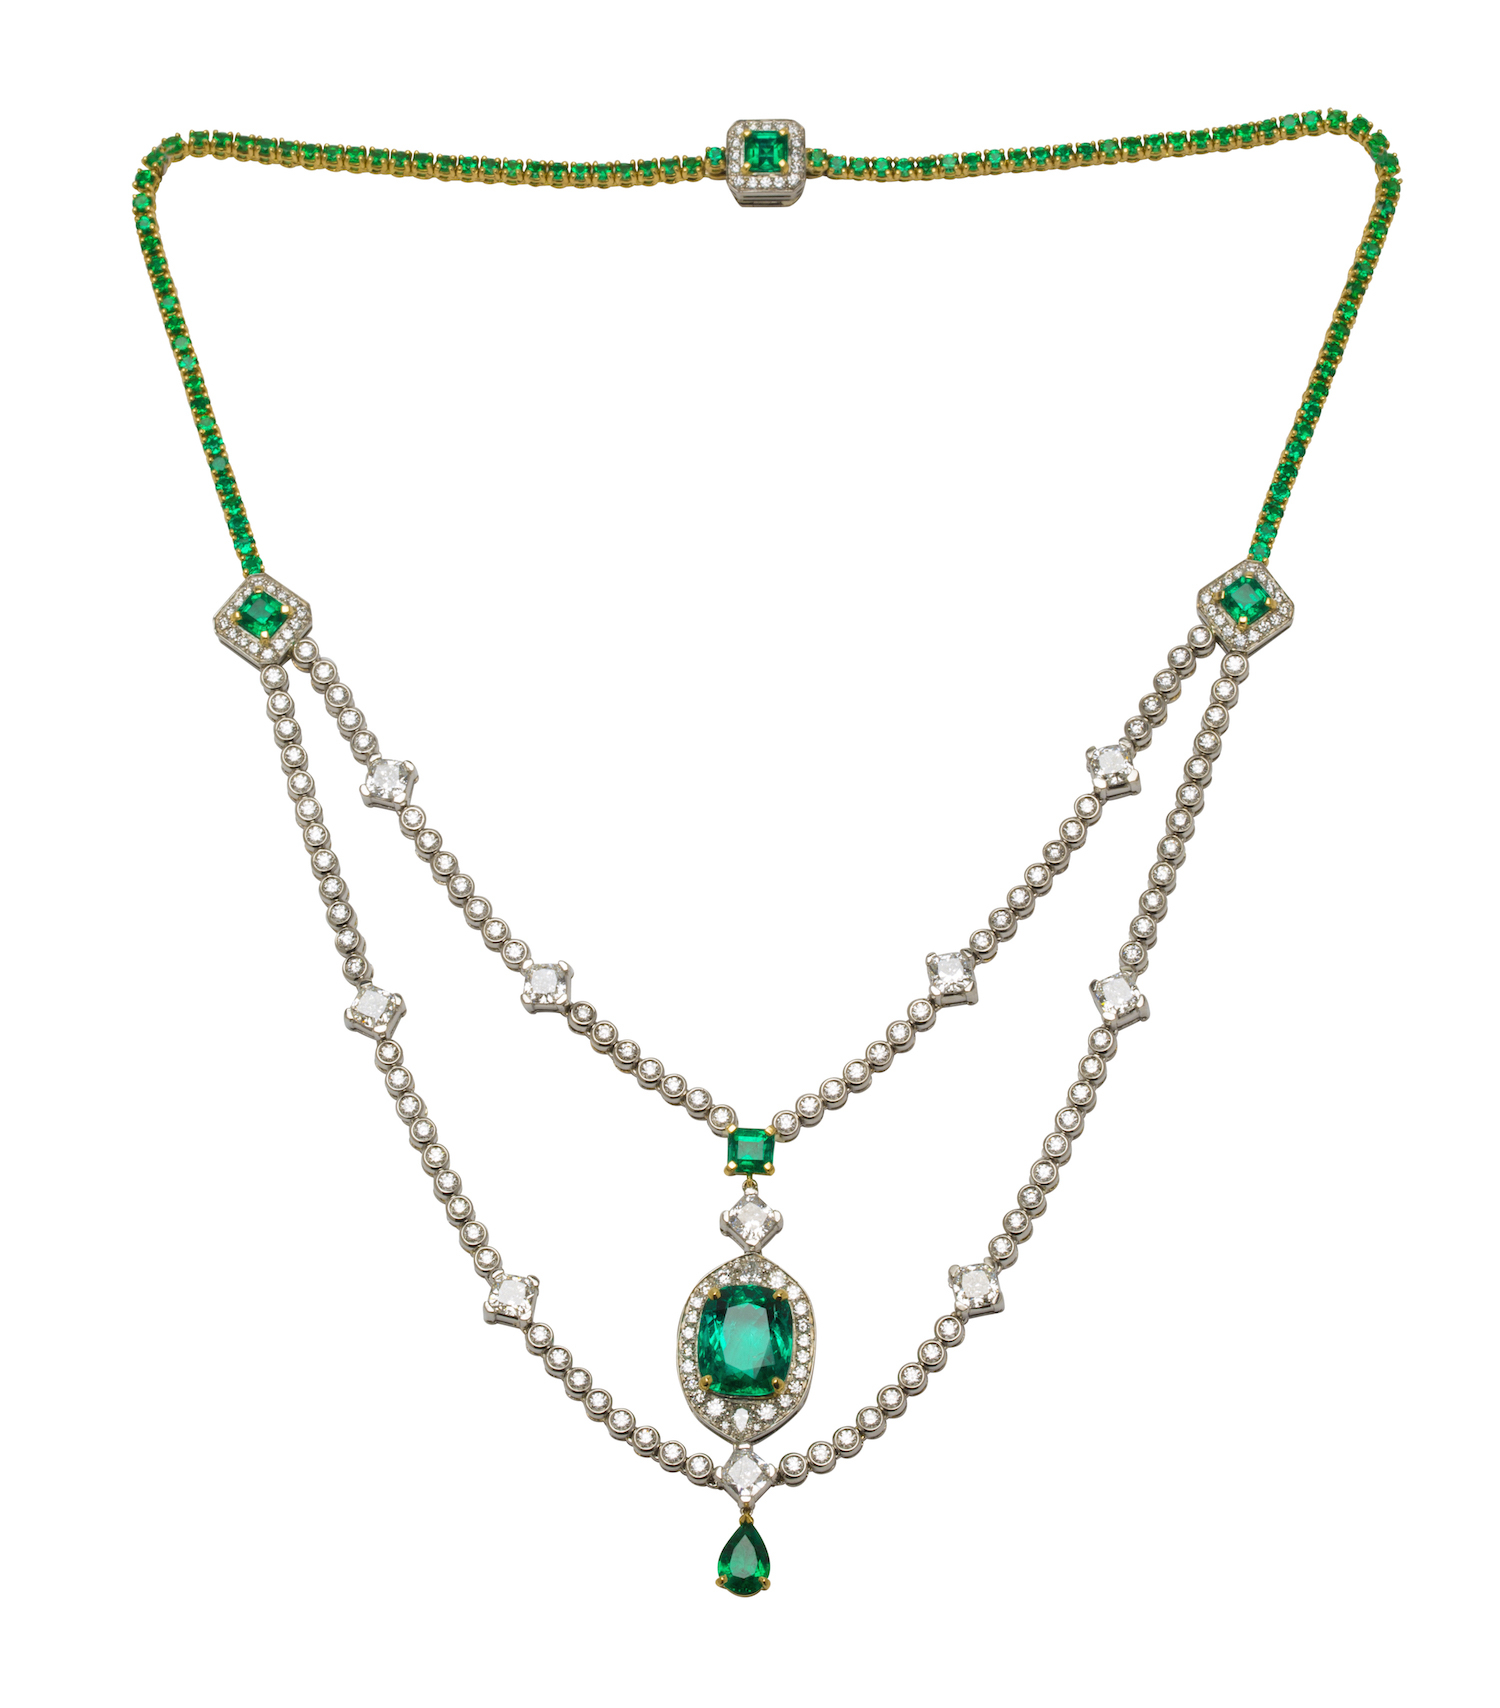 An emerald and diamond necklace, composed of a double strand of round and cushion cut diamonds; the centre stone an important Colombian cushion cut emerald.